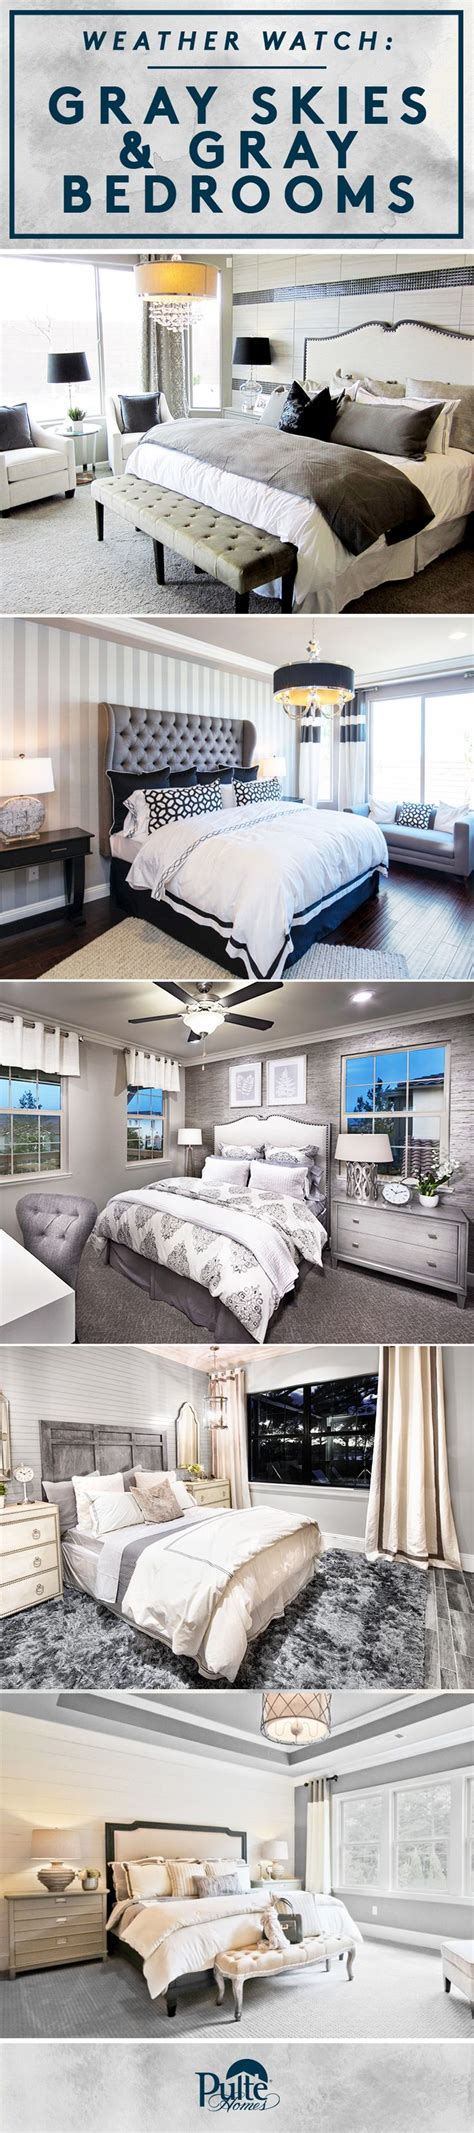 pulte homes interior design new pulte homes interior design interior decorating ideas